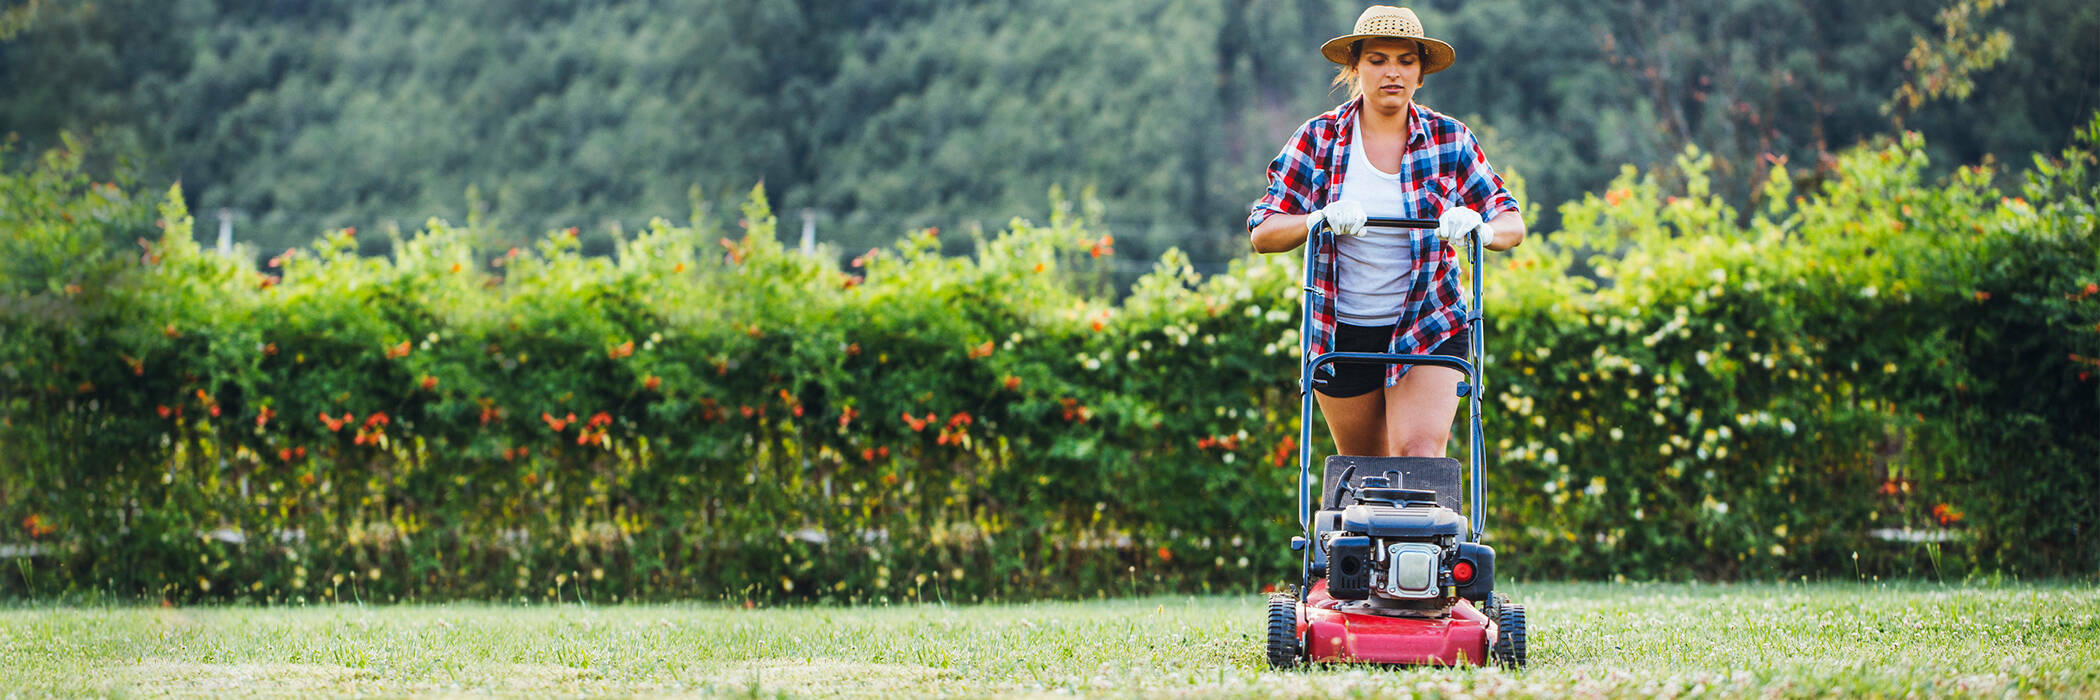 Middle aged woman mowing her lawn.